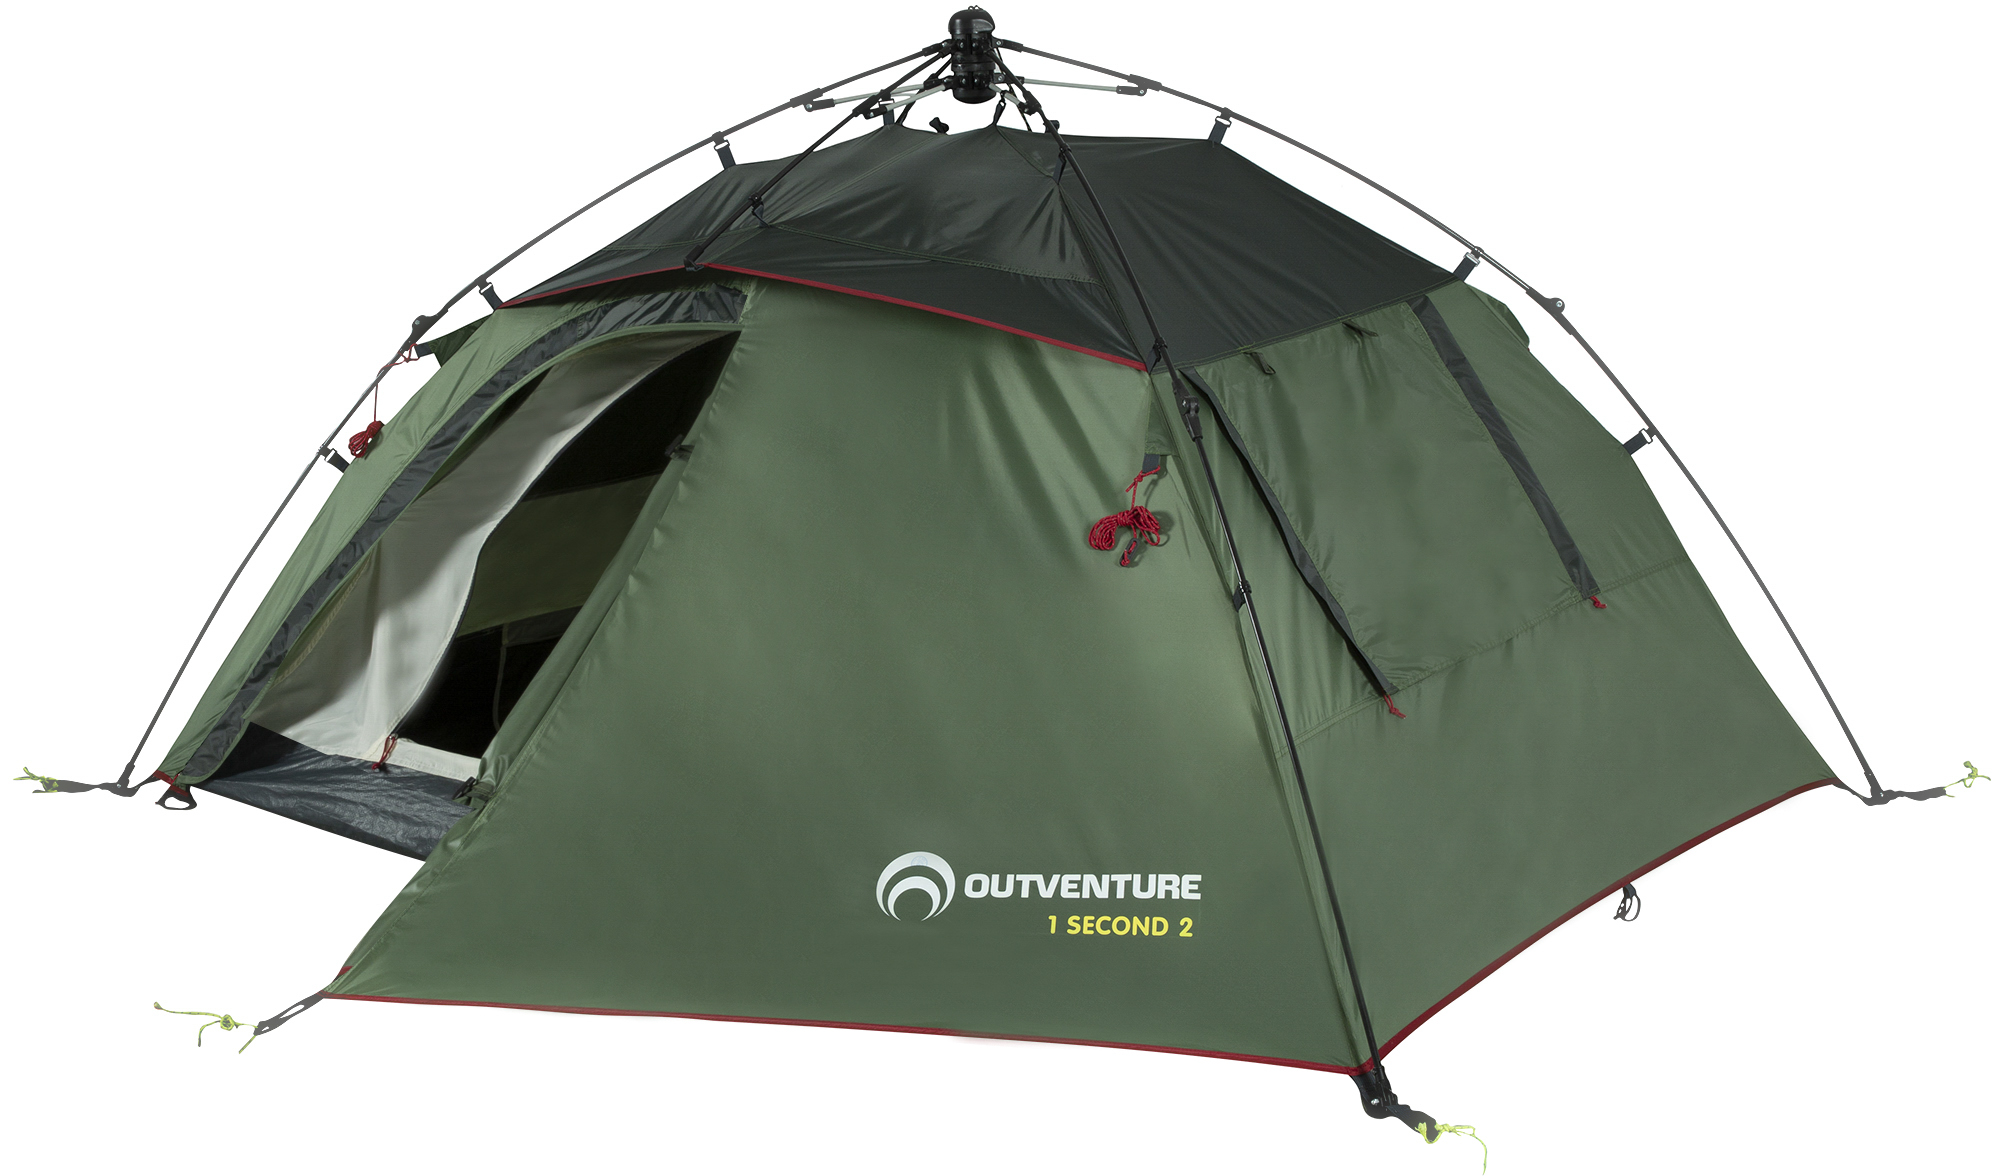 Outventure 1 SECOND TENT 2 цена и фото